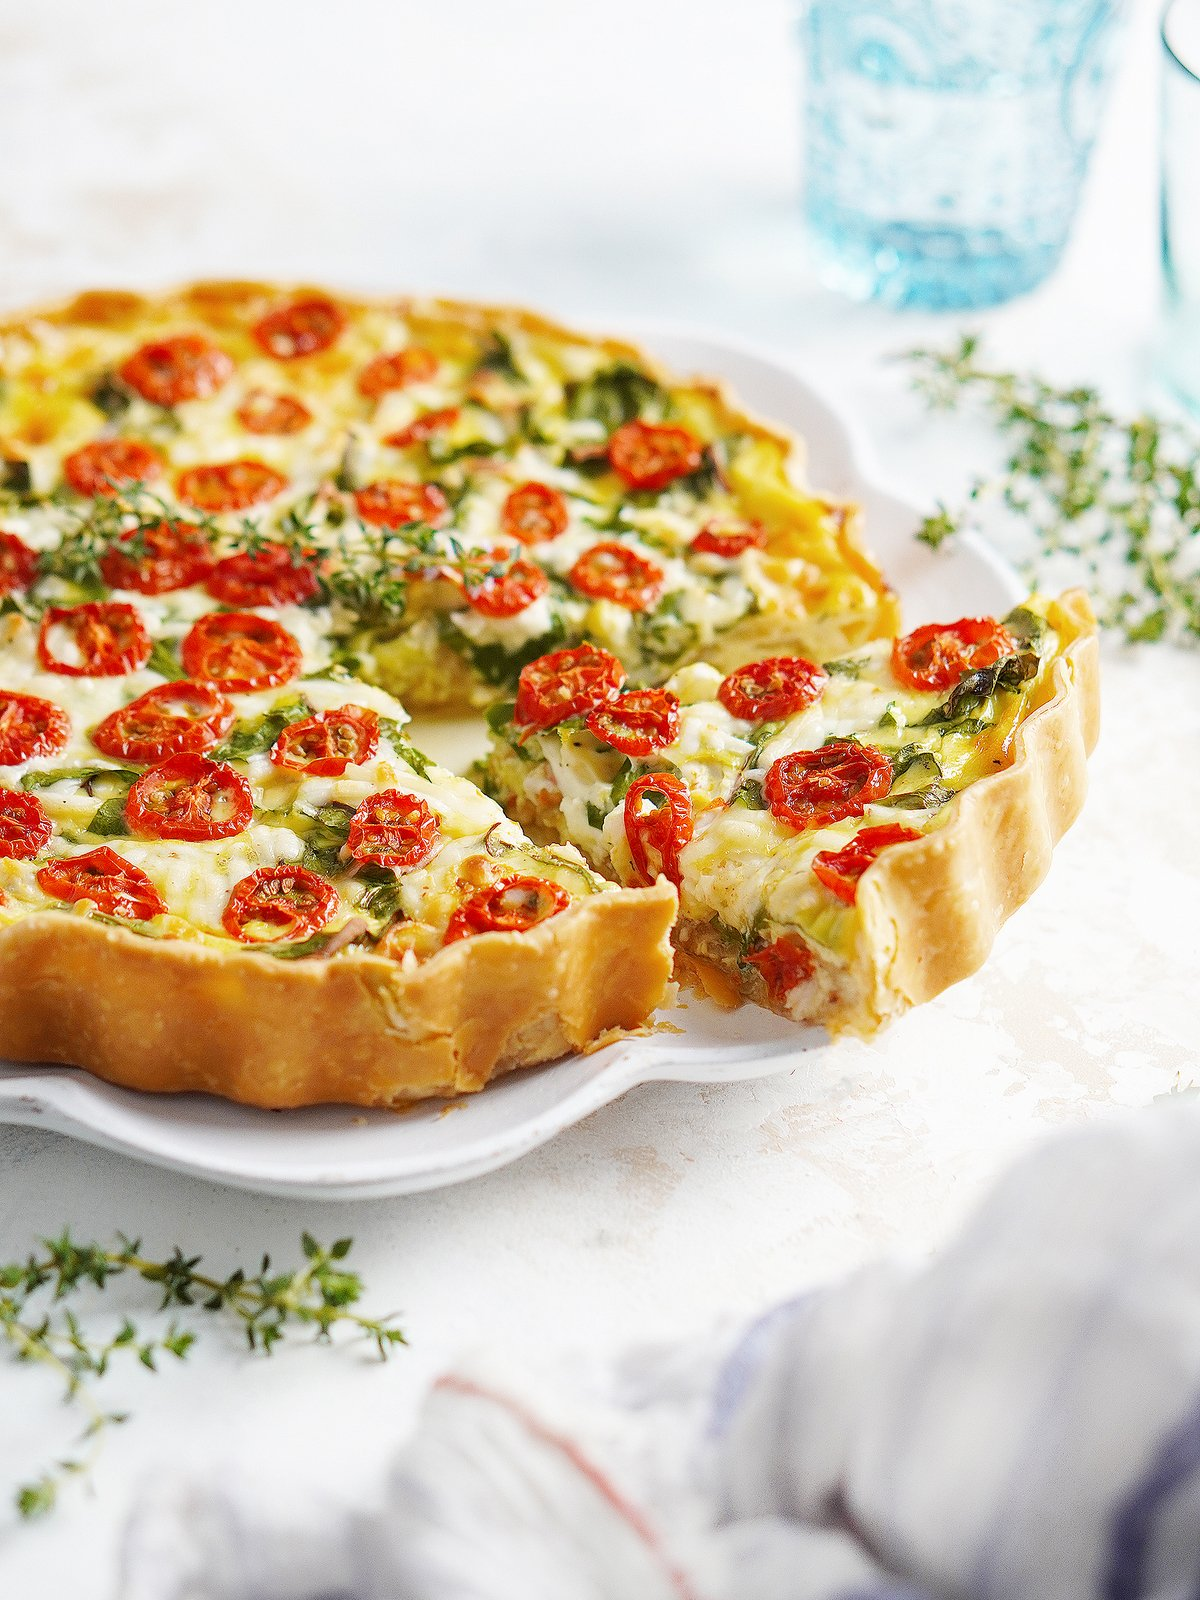 A quiche on a plate with a slice coming out